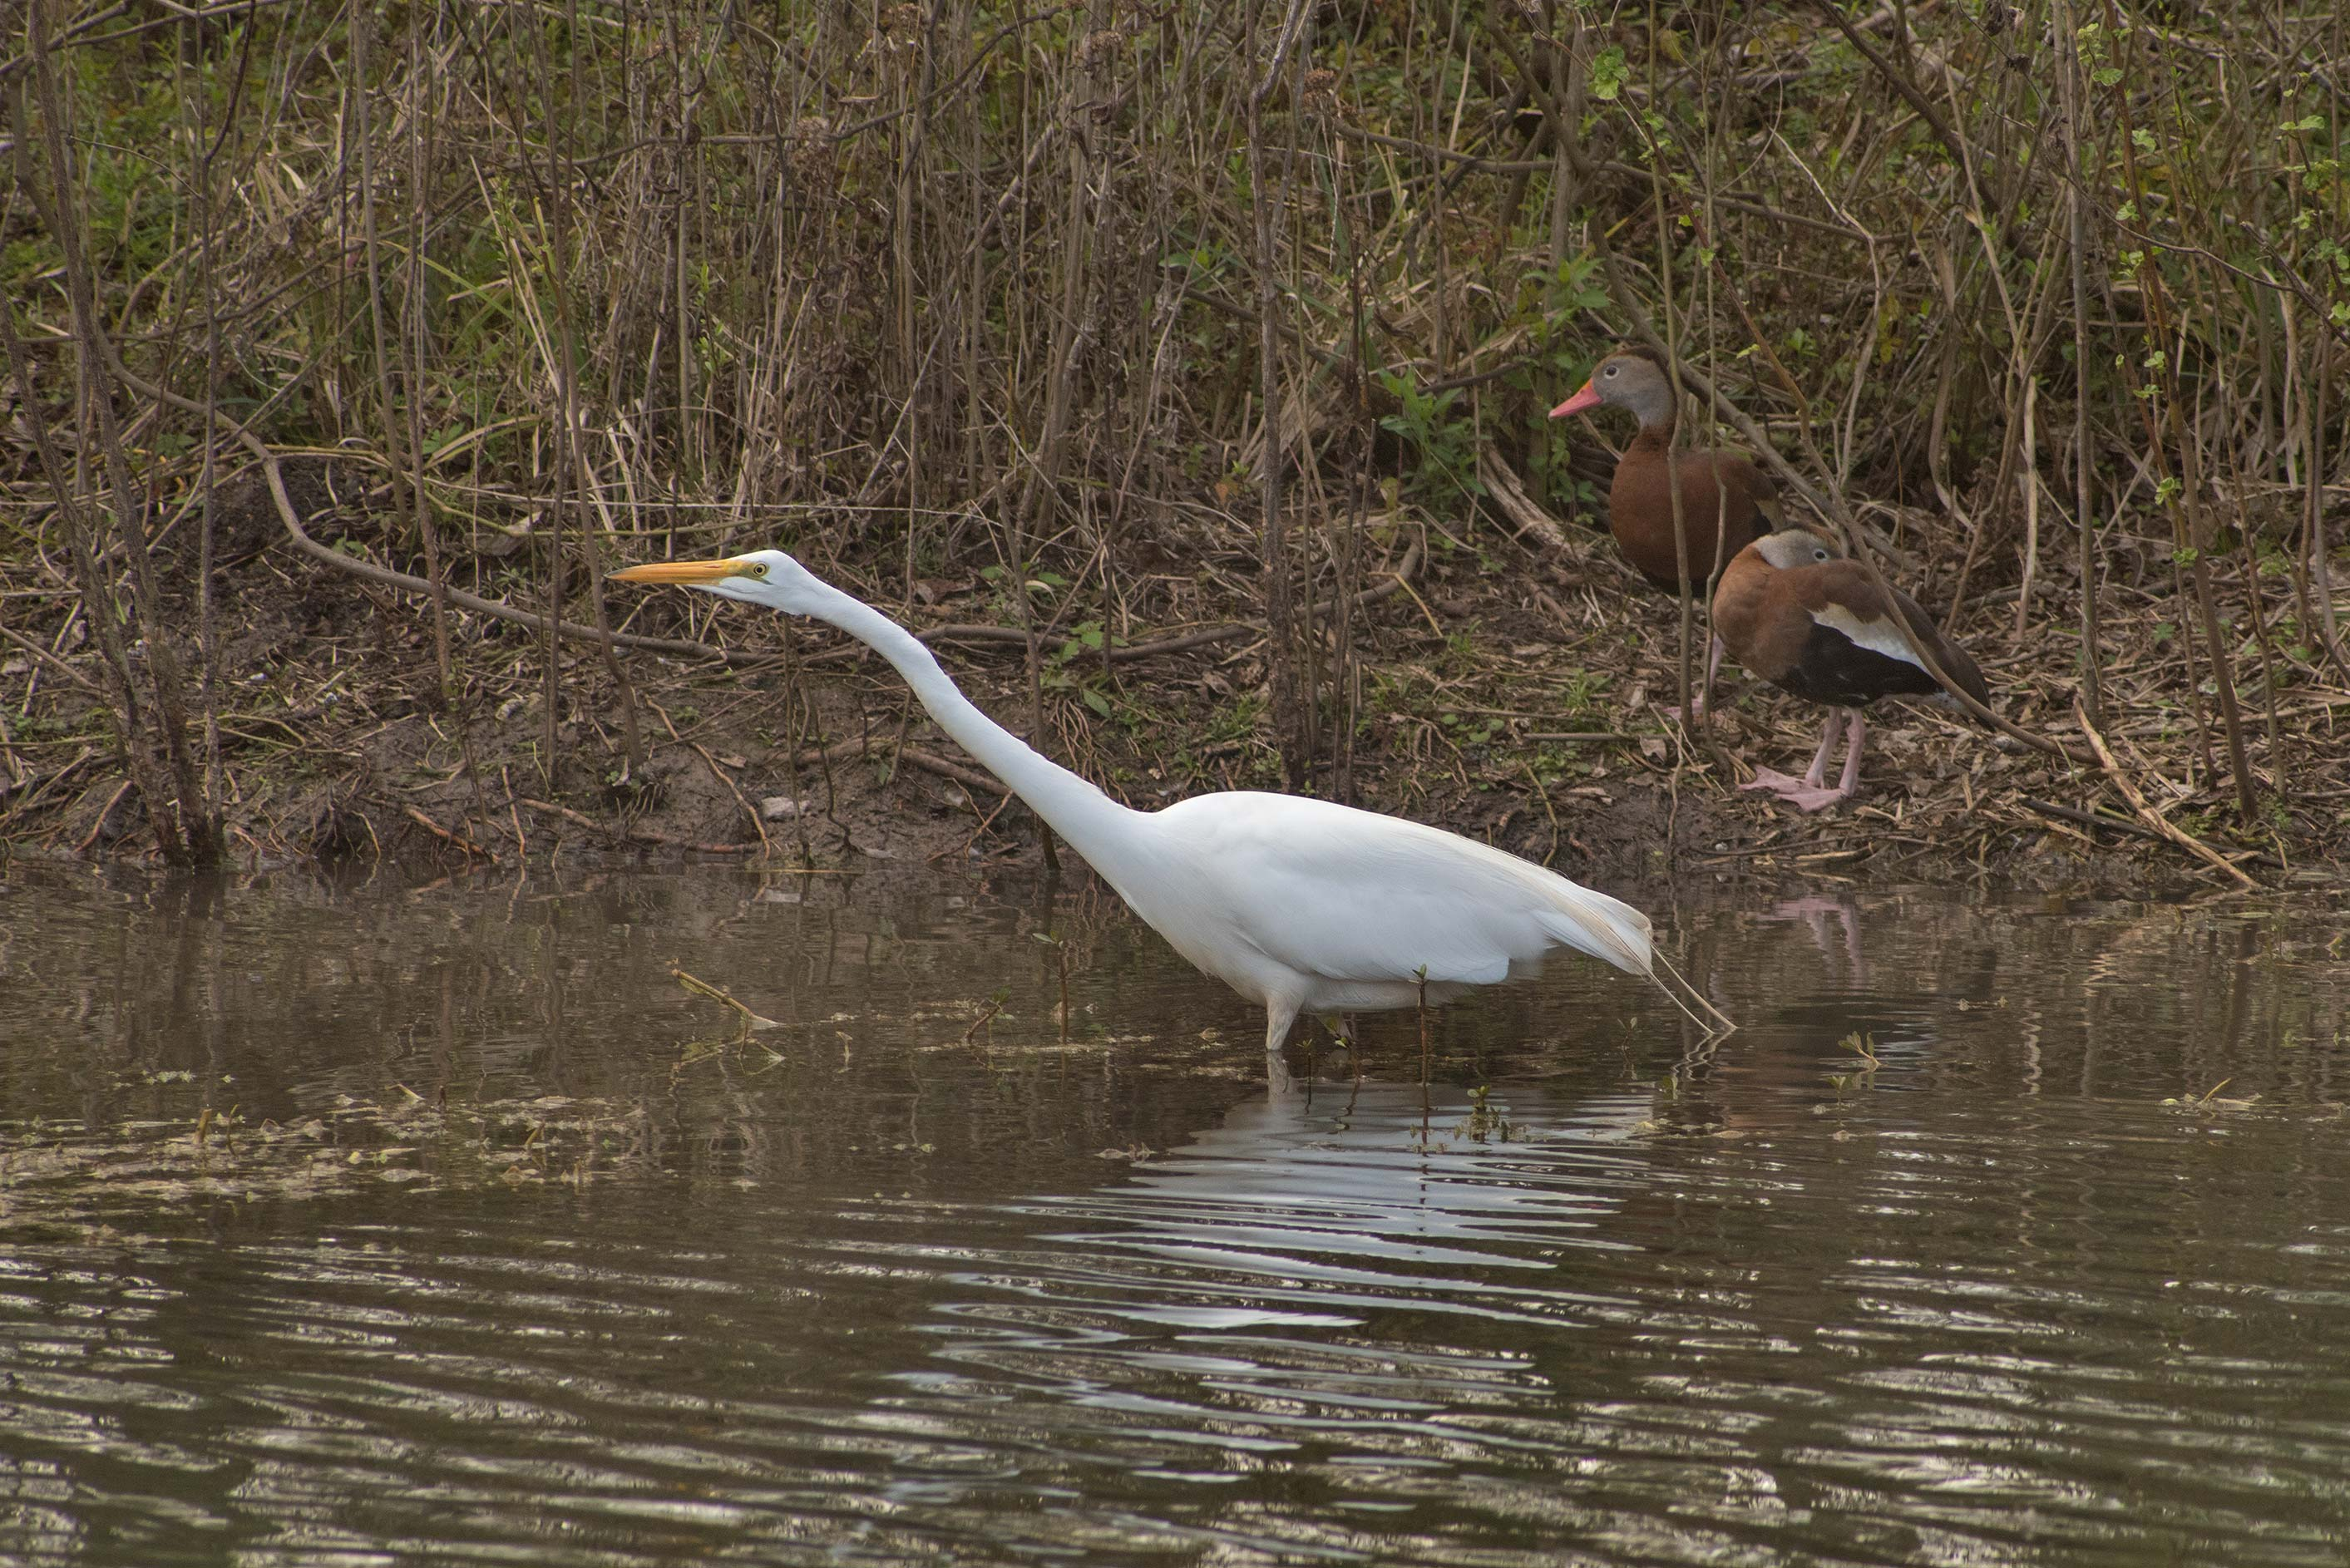 Hunting great white egret (Ardea alba) bird on an...Bend State Park. Needville, Texas